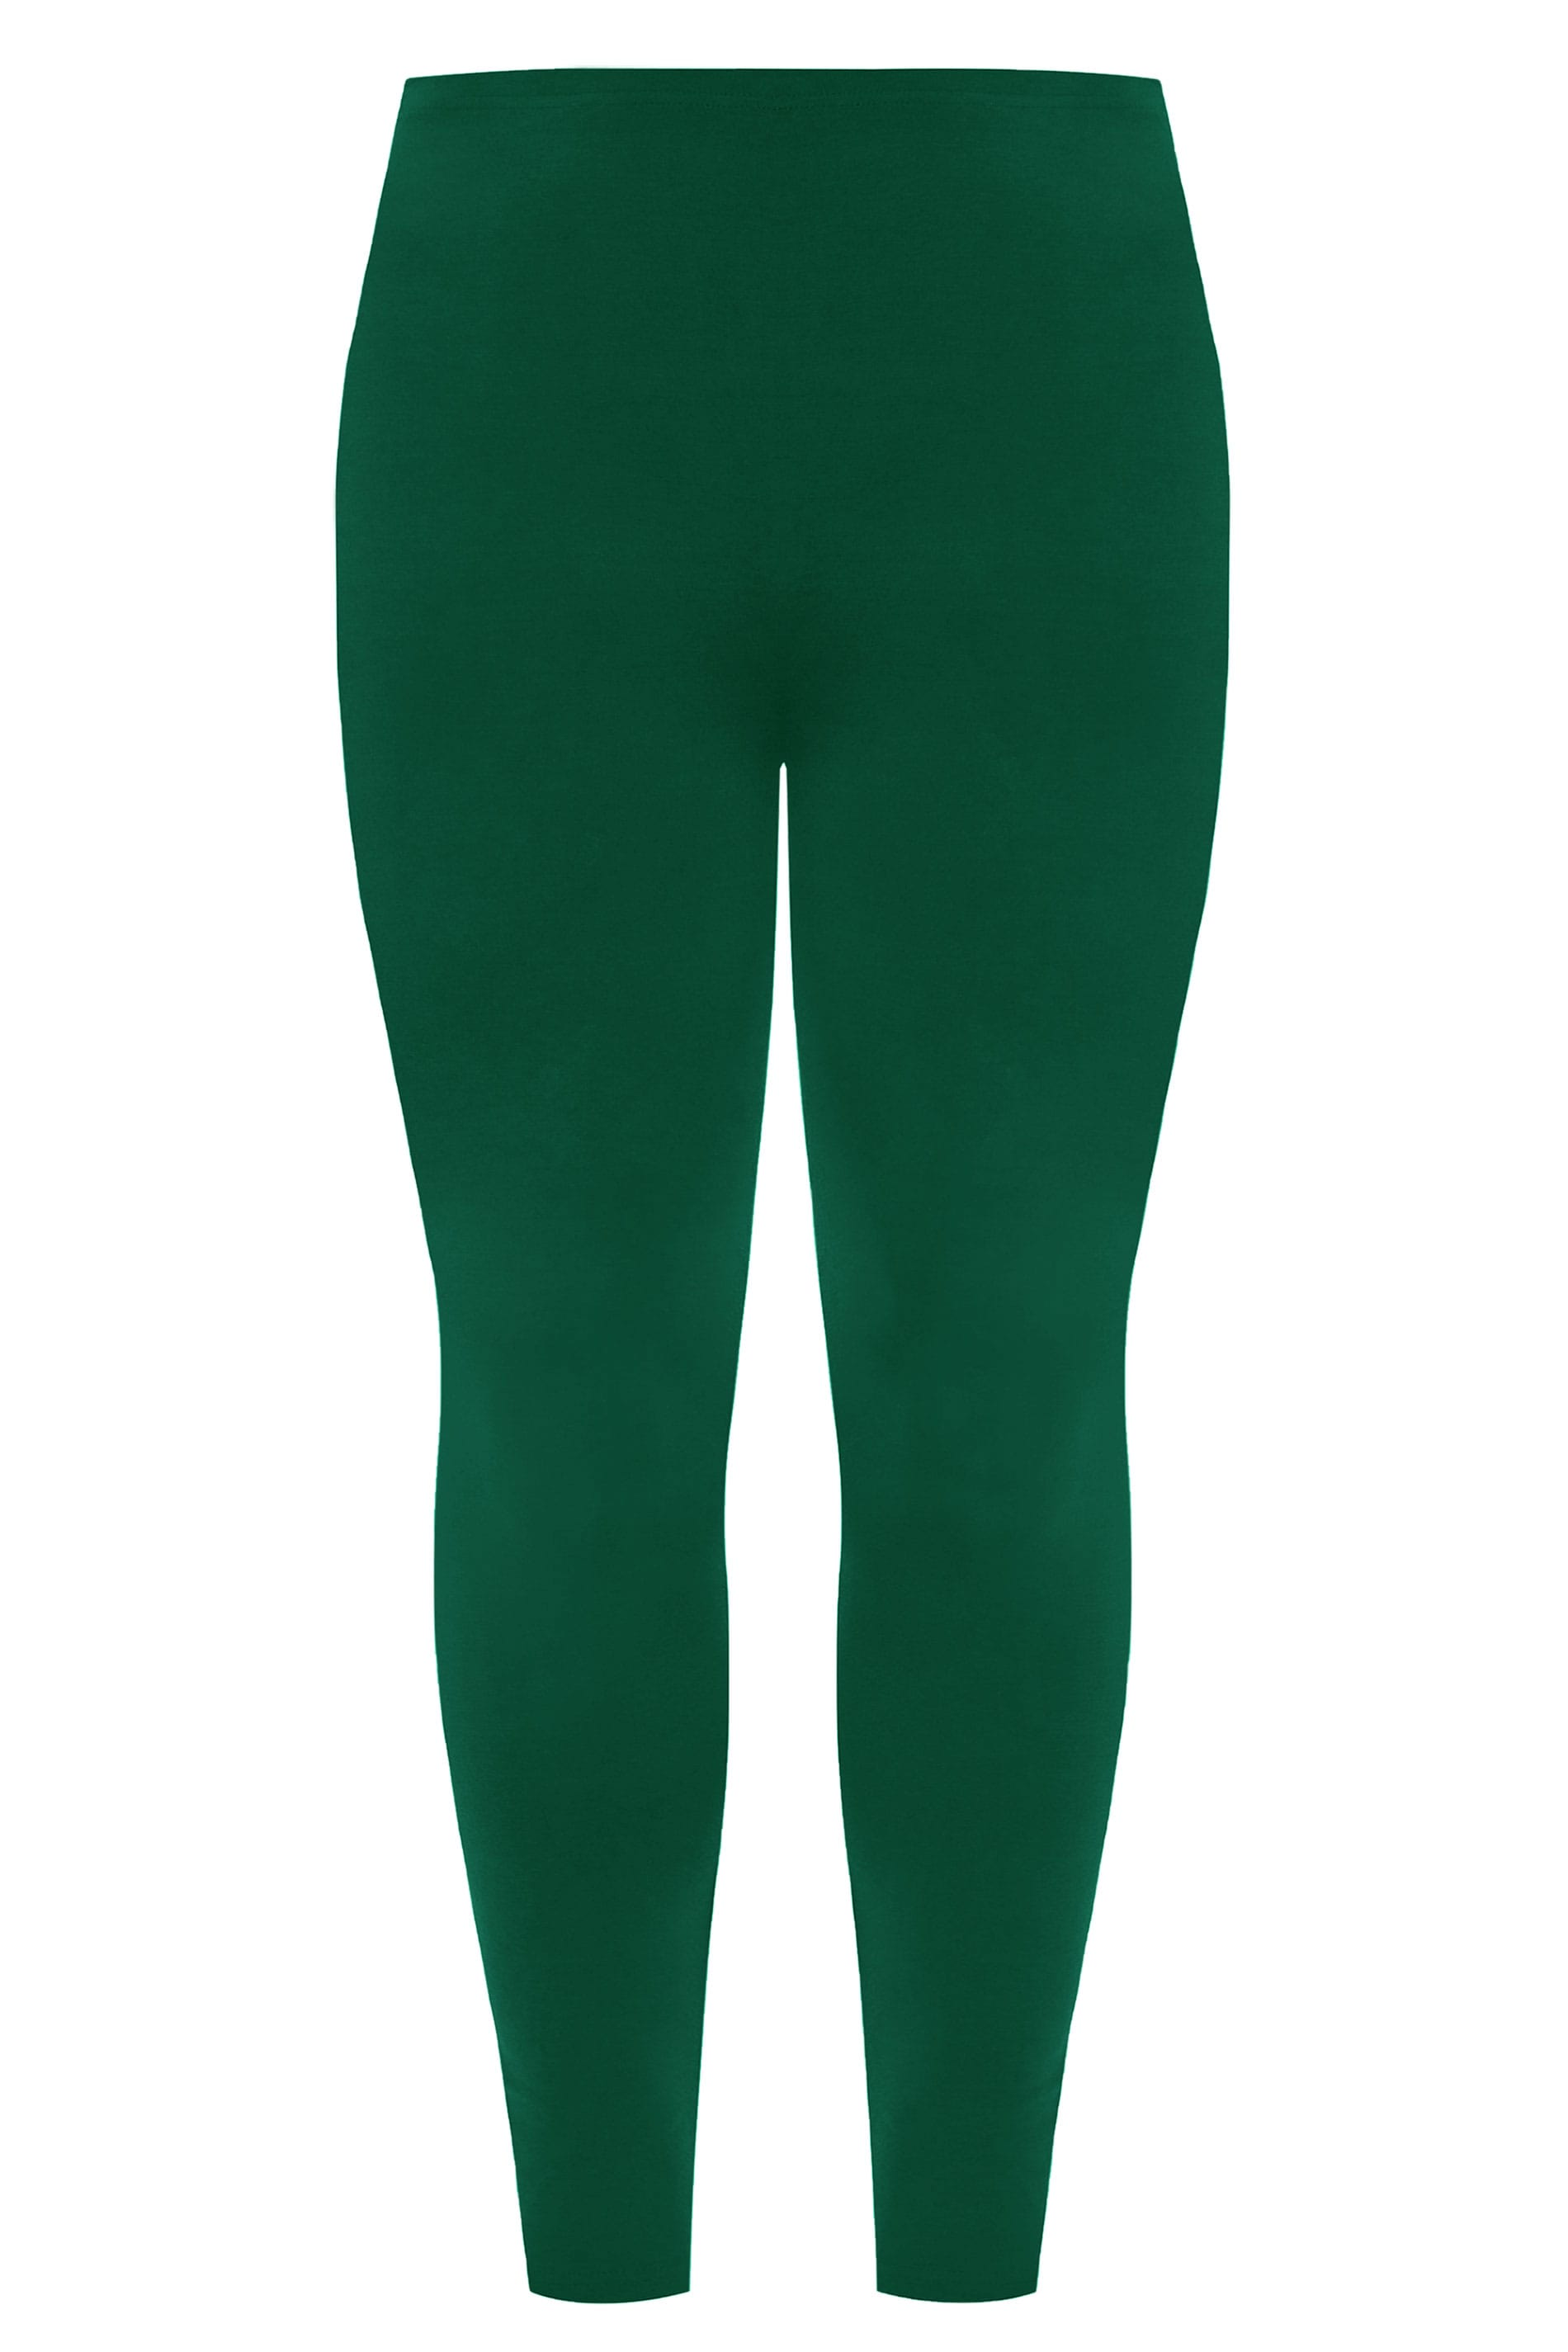 Yours-Clothing-Womens-Plus-Size-Colour-Block-Fashion-Leggings thumbnail 9